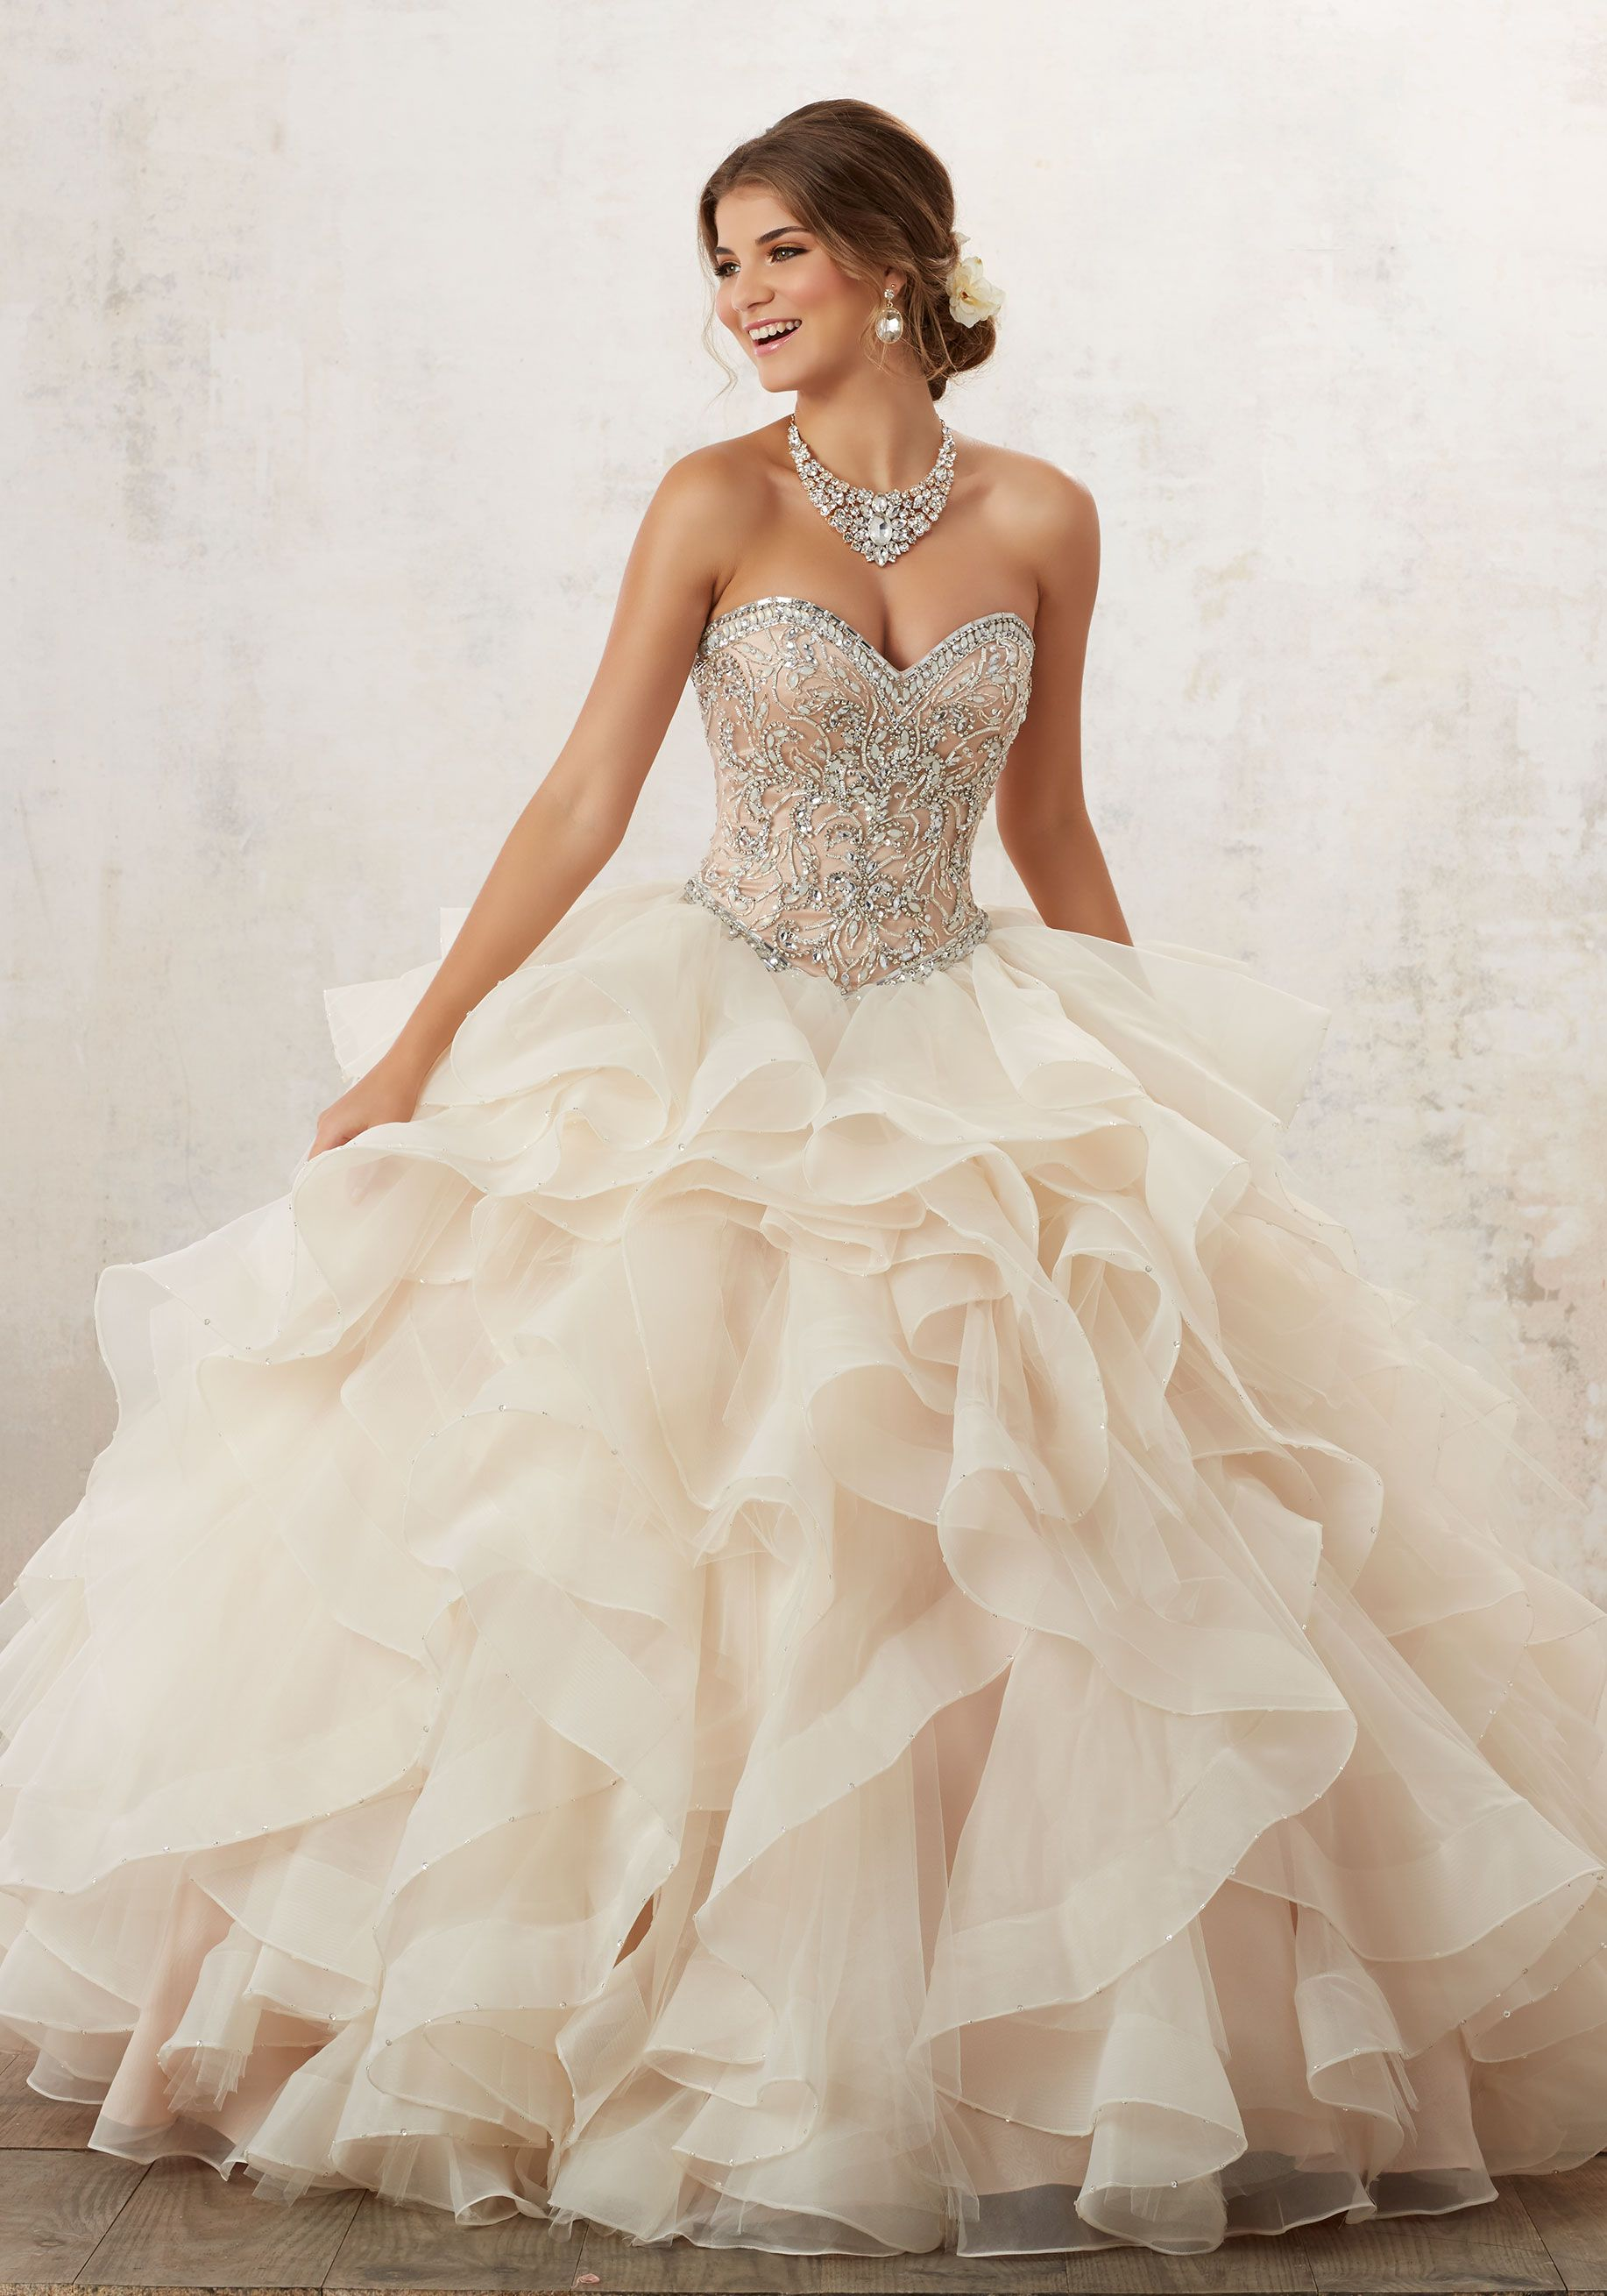 cb7047132a72 Classic Quinceañera Ballgown Combines a Stunning Jewel Beaded Sweetheart  Bodice, and Full Ruffled Skirt Accented with Delicate Beading. Corset Back.